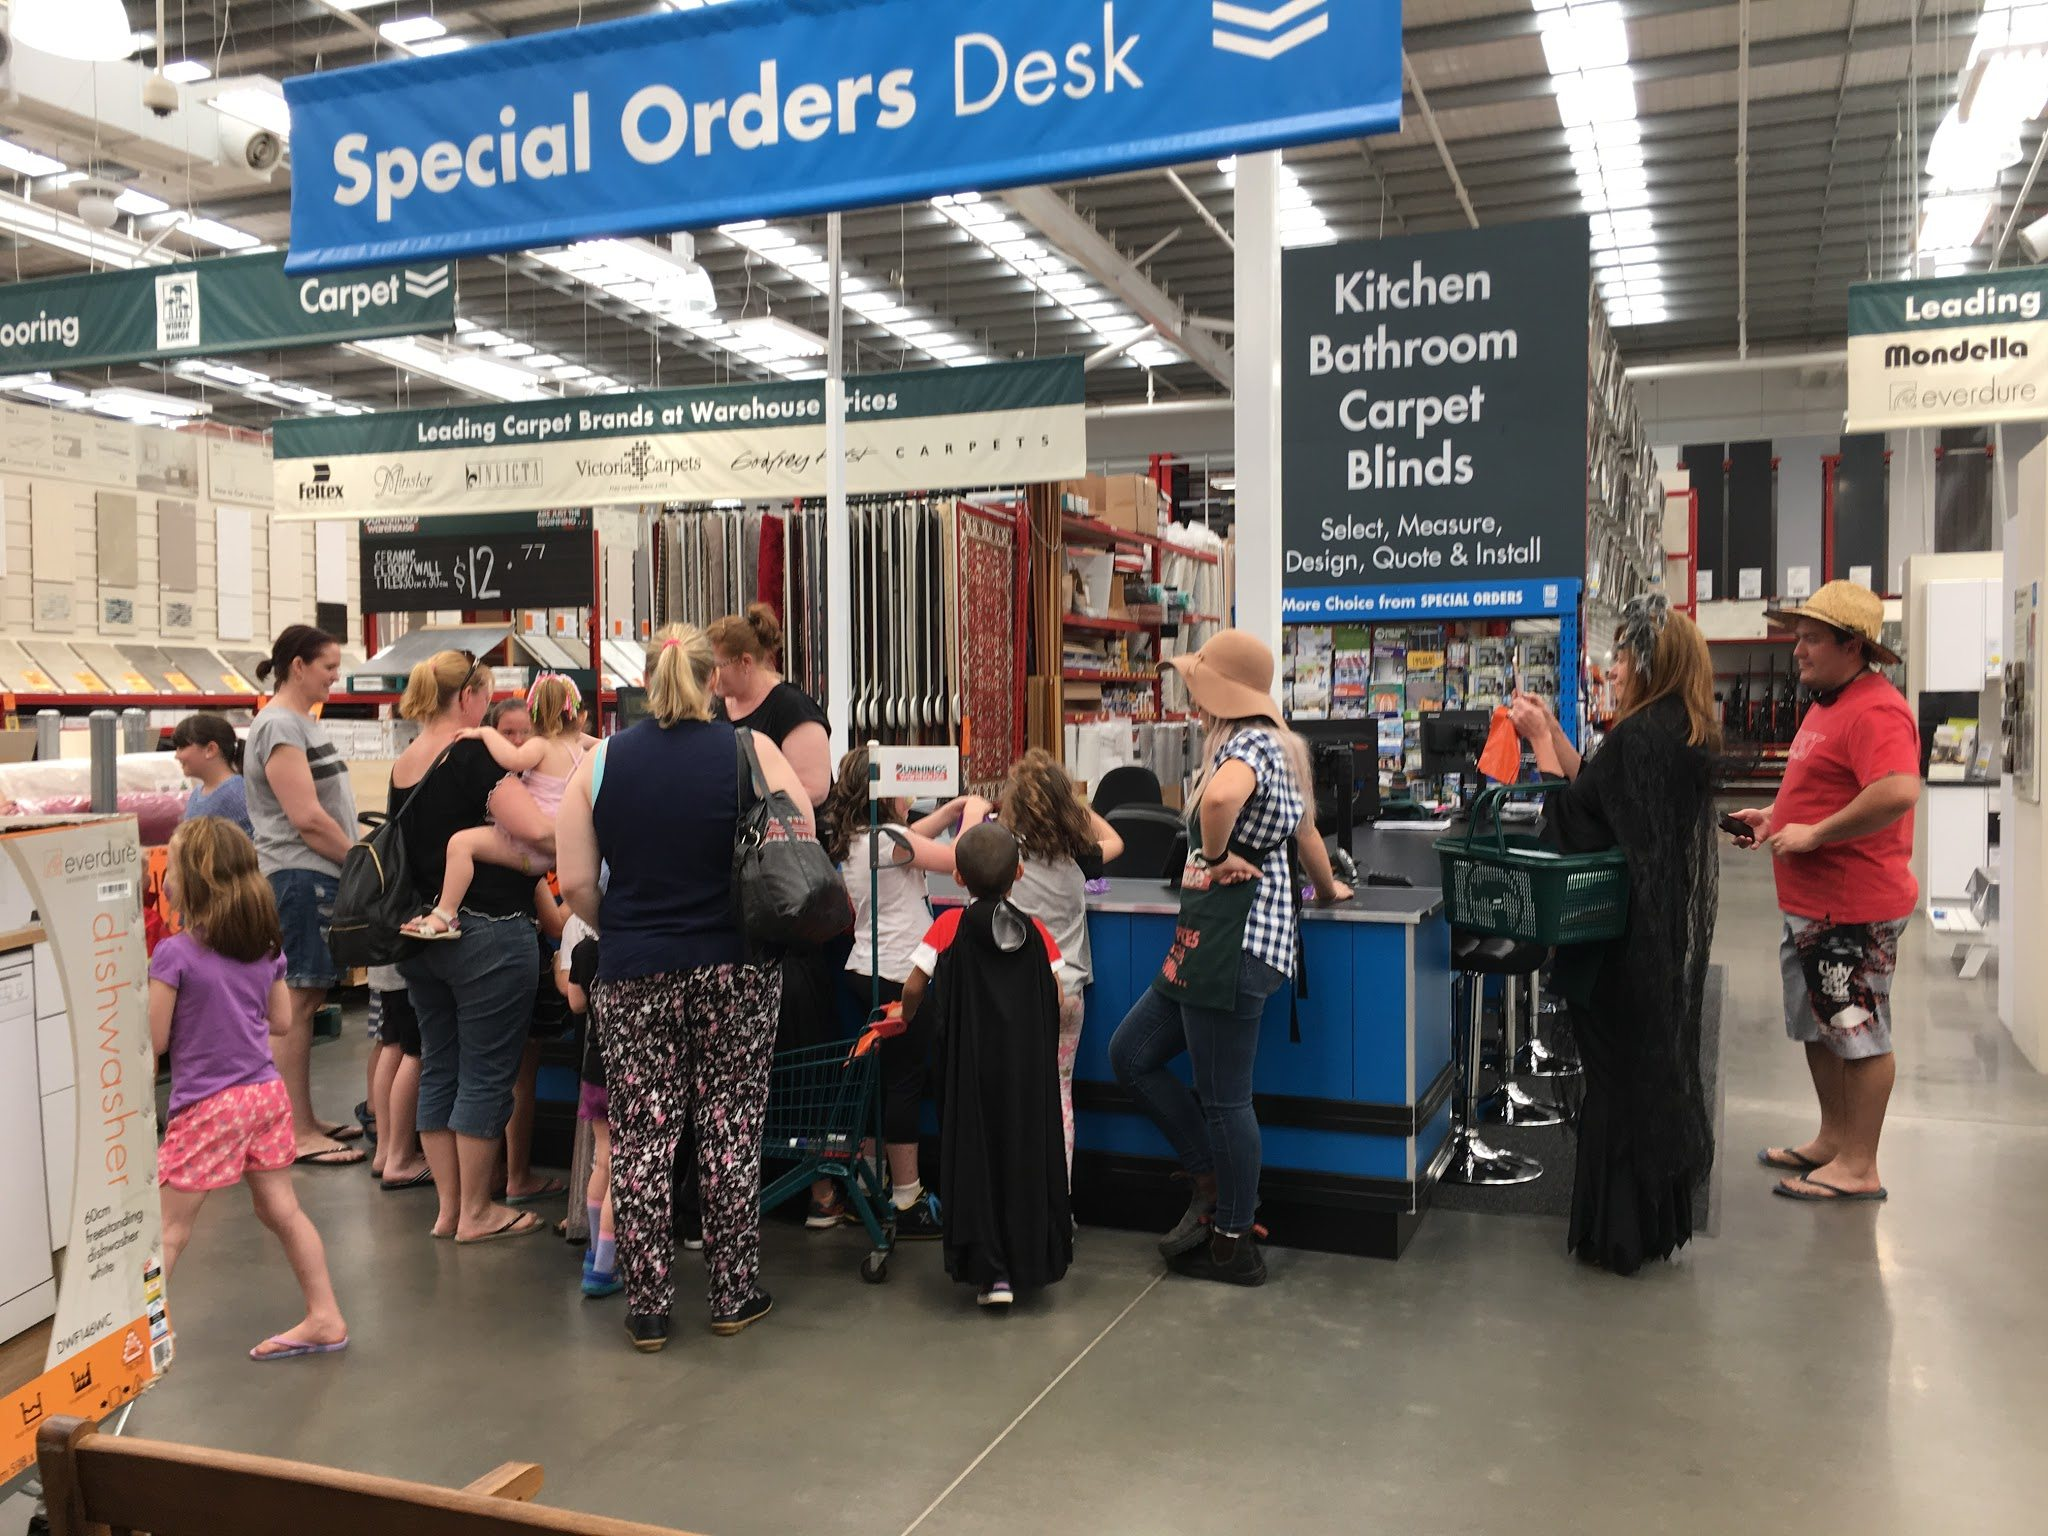 what can bunnings teach us about getting customers in the door?